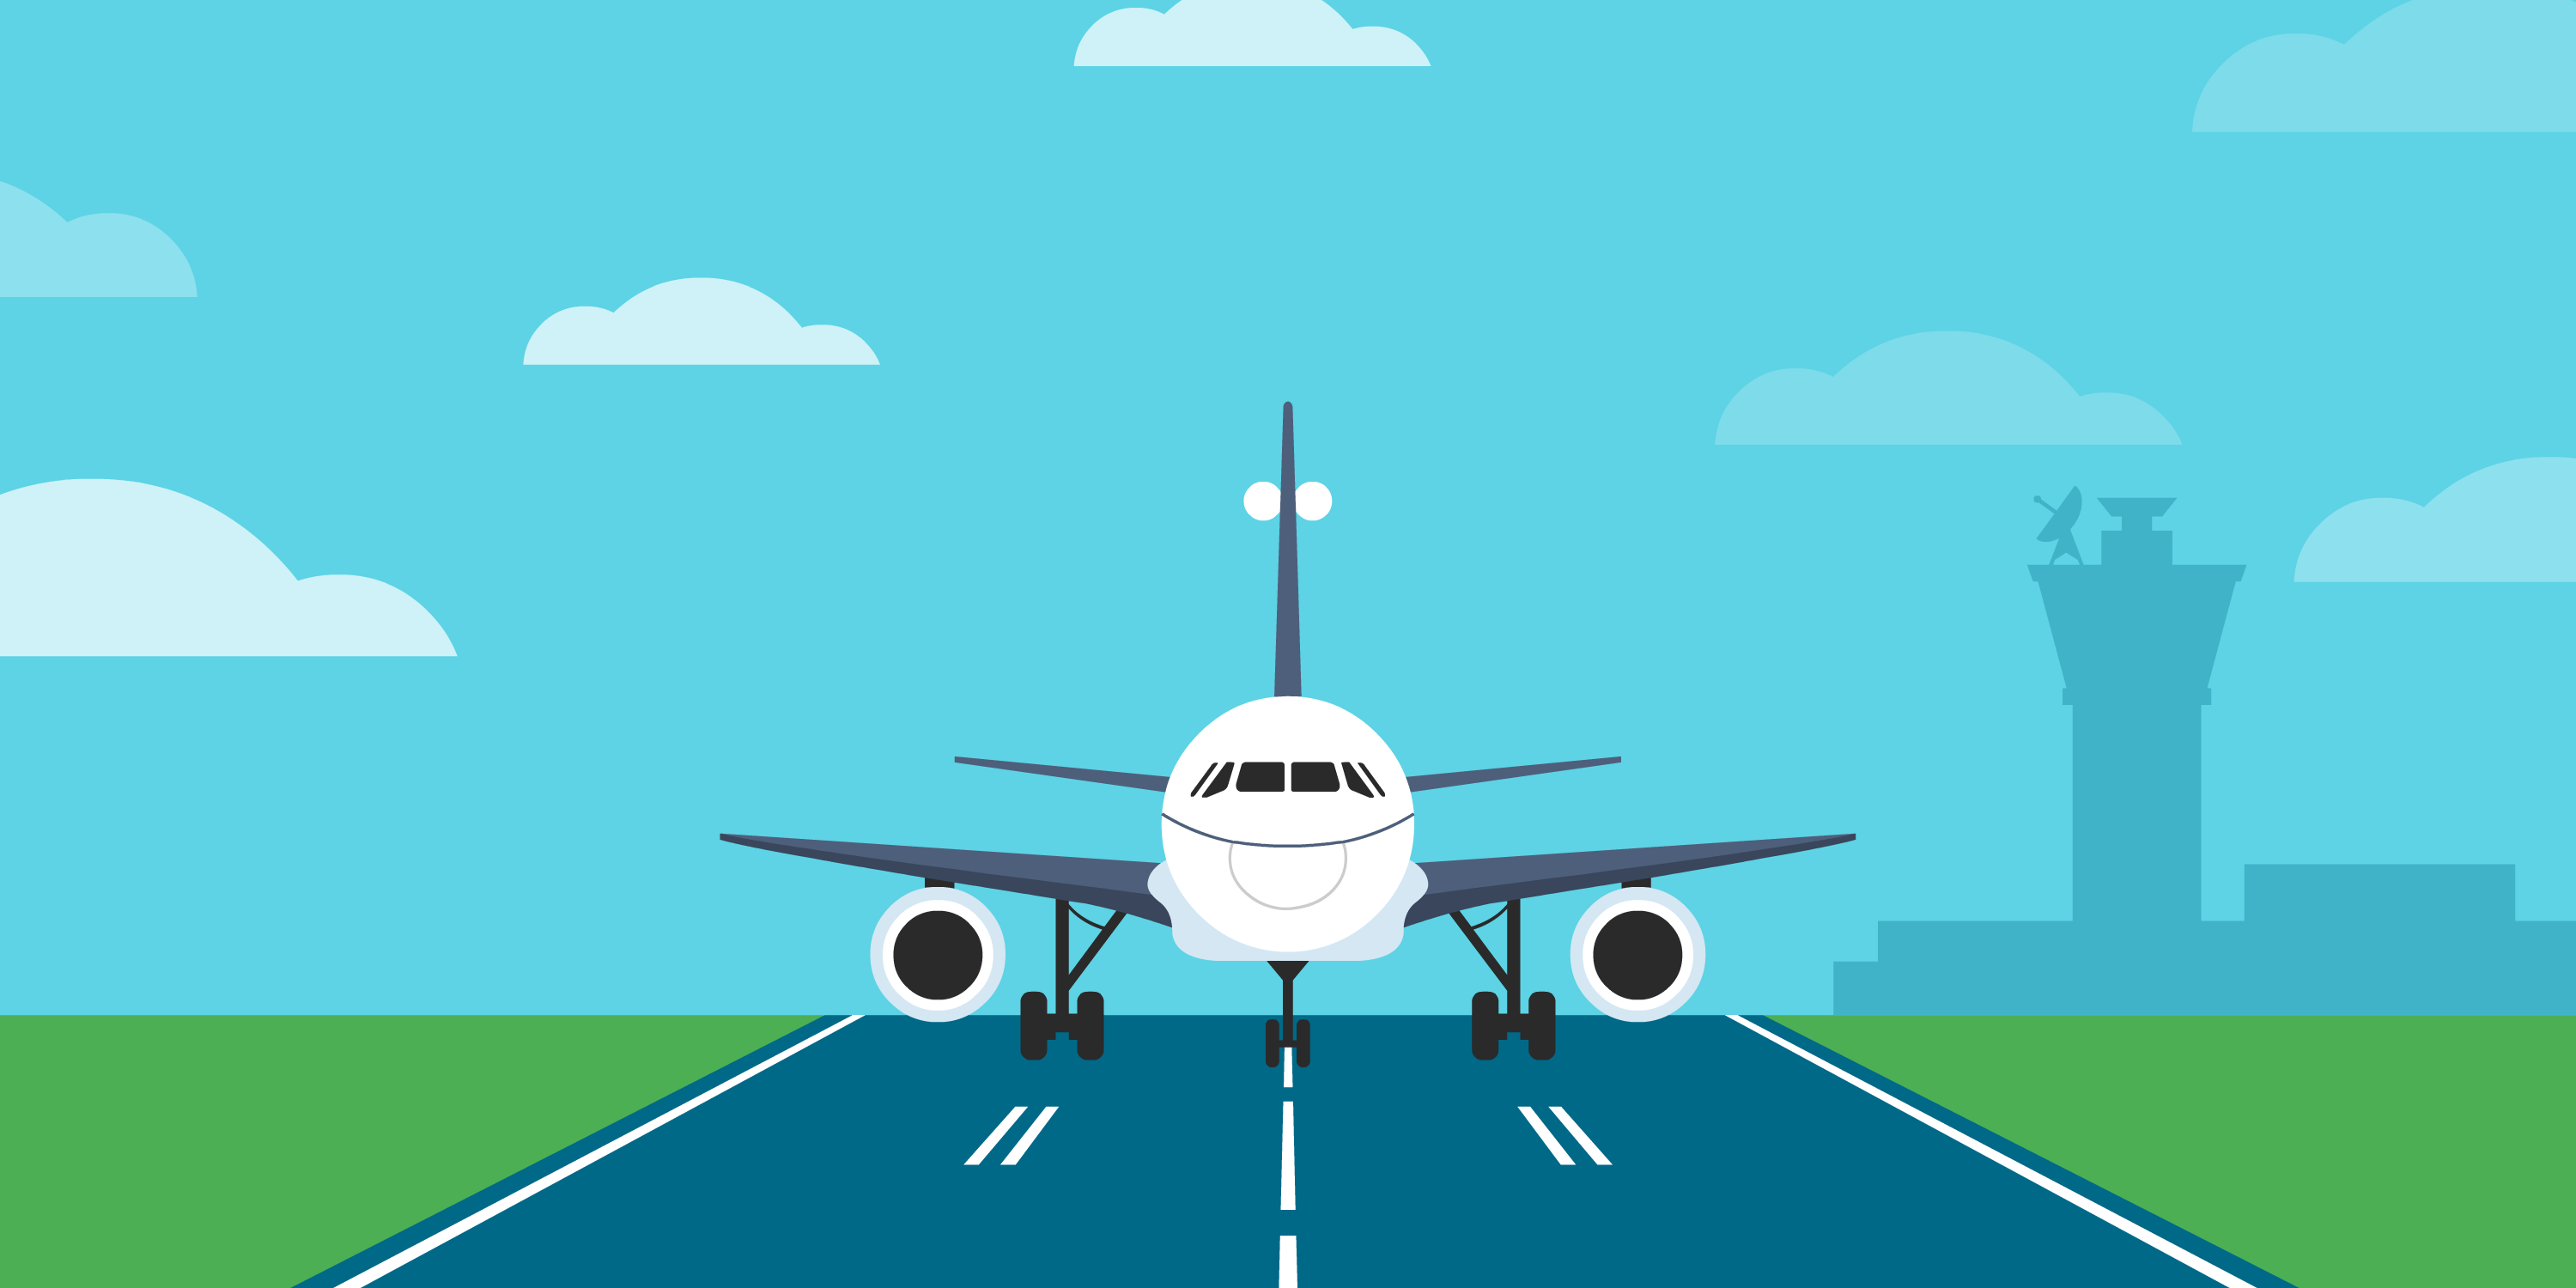 clear_the_runway 2.png